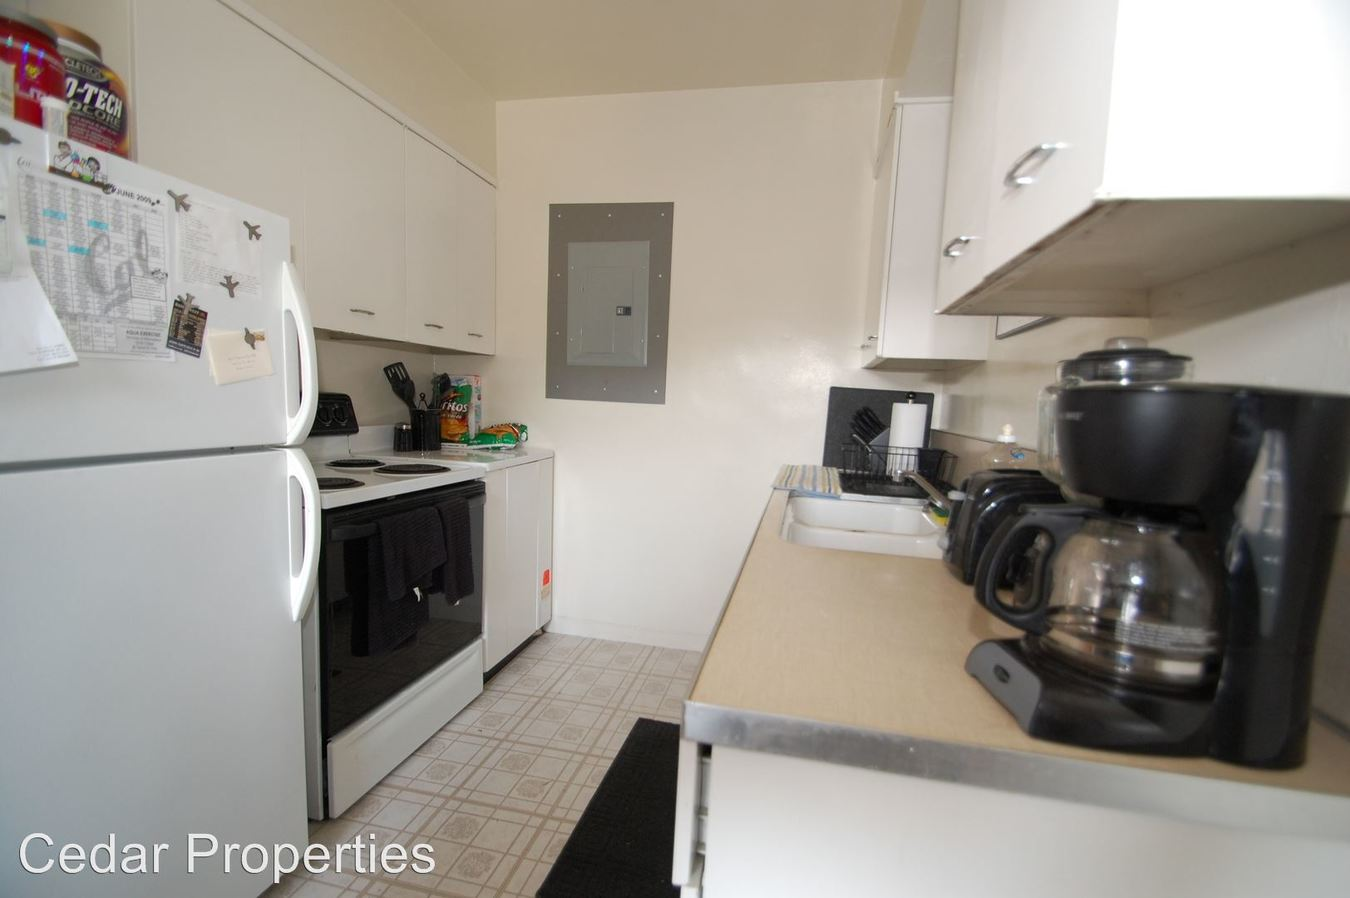 Studio 1 Bathroom Apartment for rent at 1786 Spruce St in Berkeley, CA